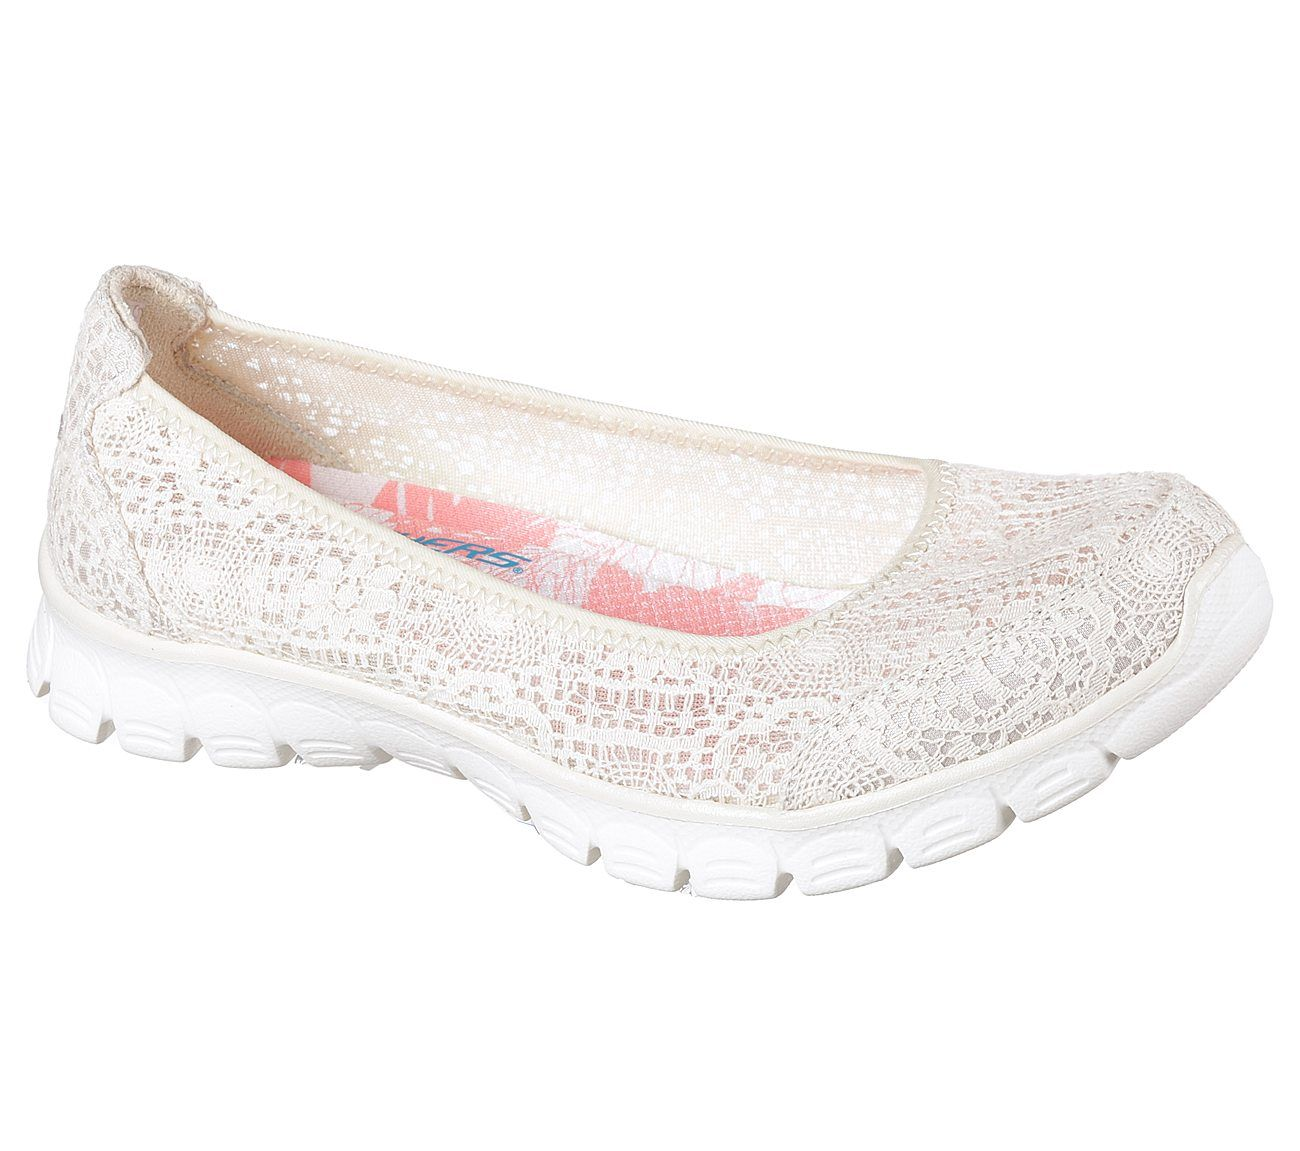 Life can be lovely wearing the lacy, pretty and comfortable